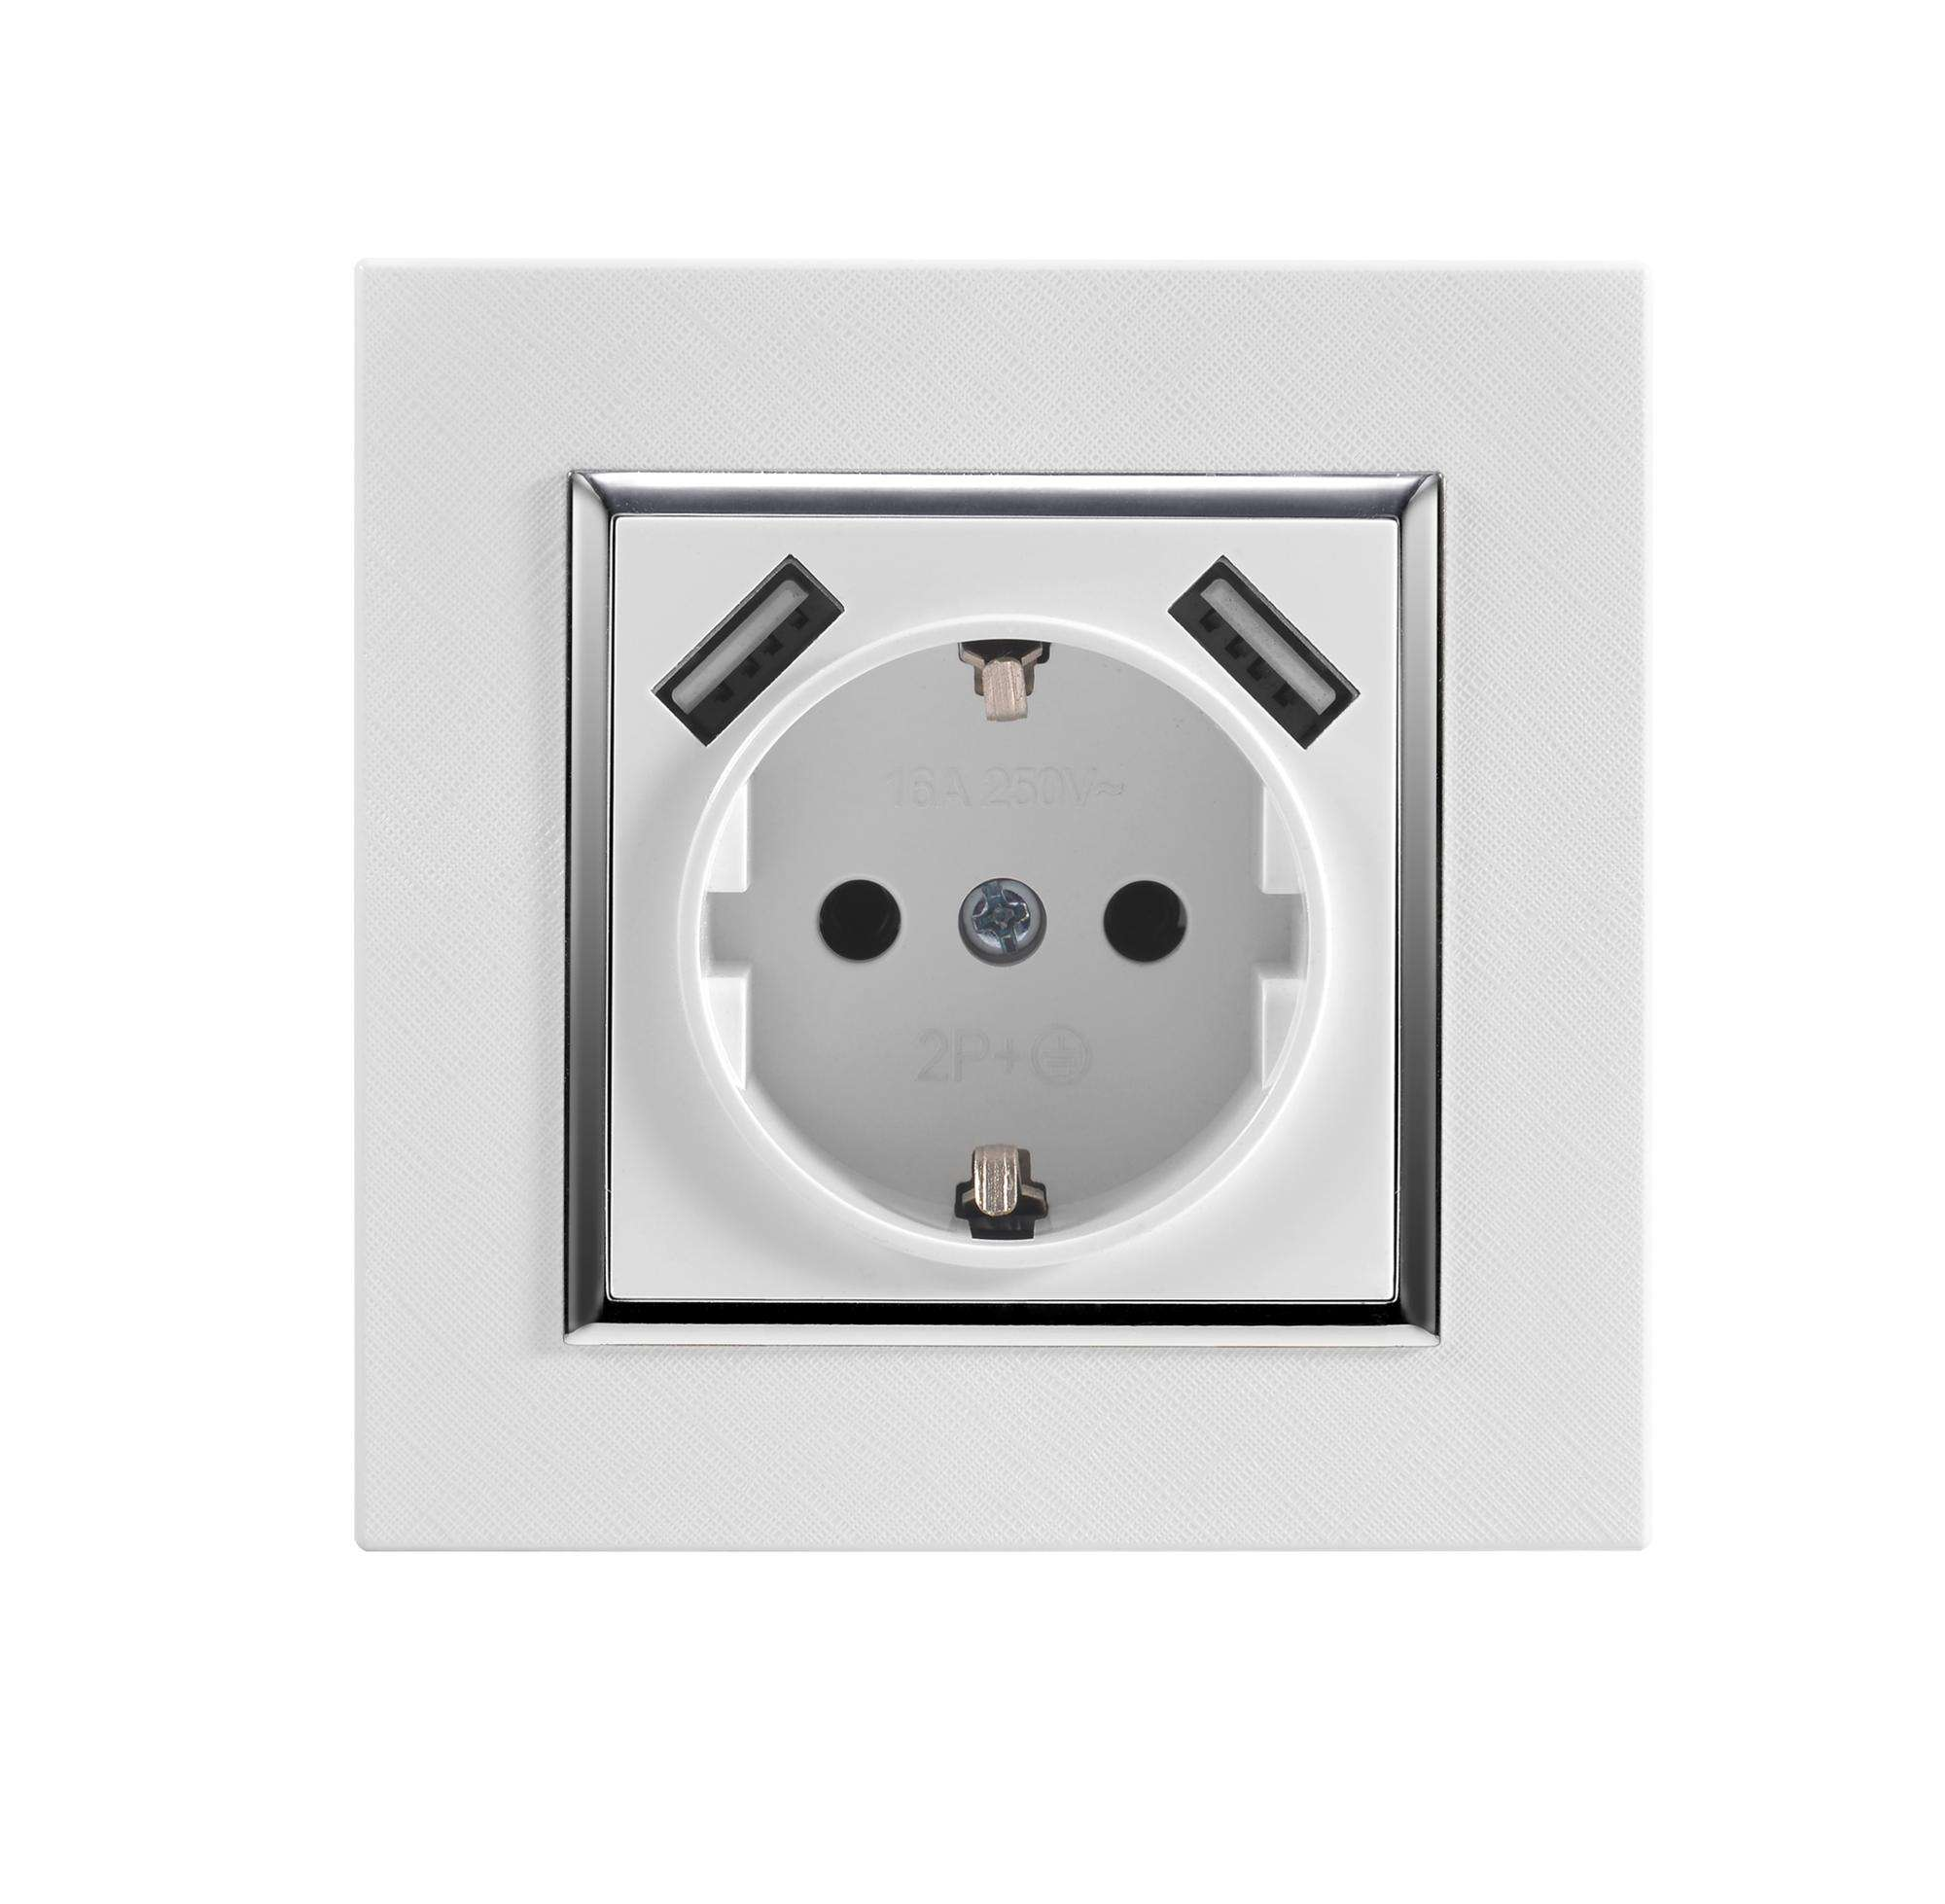 Hoge kwaliteit 2.1A EURO usb outlet stopcontact